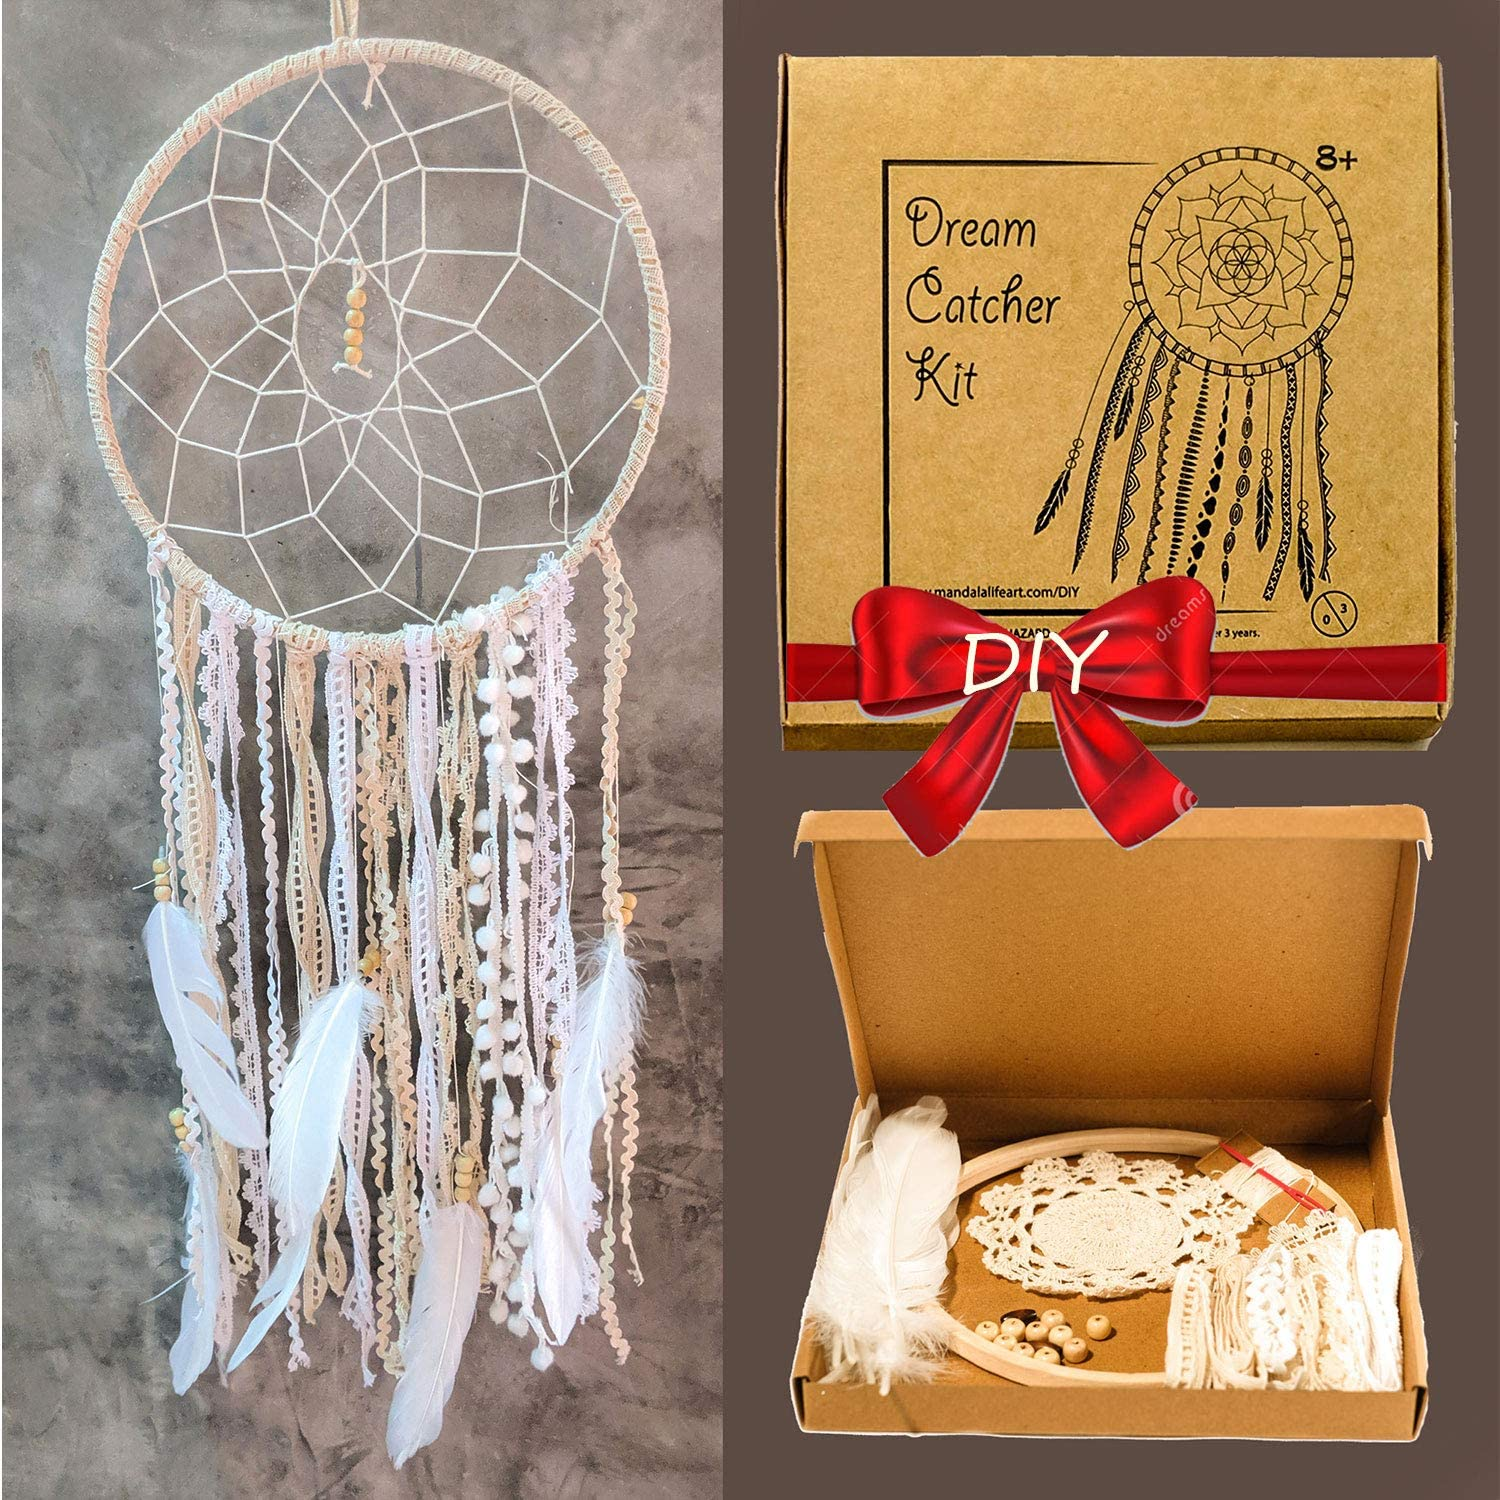 Mandala Life ART DIY Dream Catcher Kit 12x30 inches - Make Your Own Bohemian Wall Hanging with All-Natural Materials - Creative Activity Set Includes Premium Lace, Yarn, Feathers and Wooden Hoop